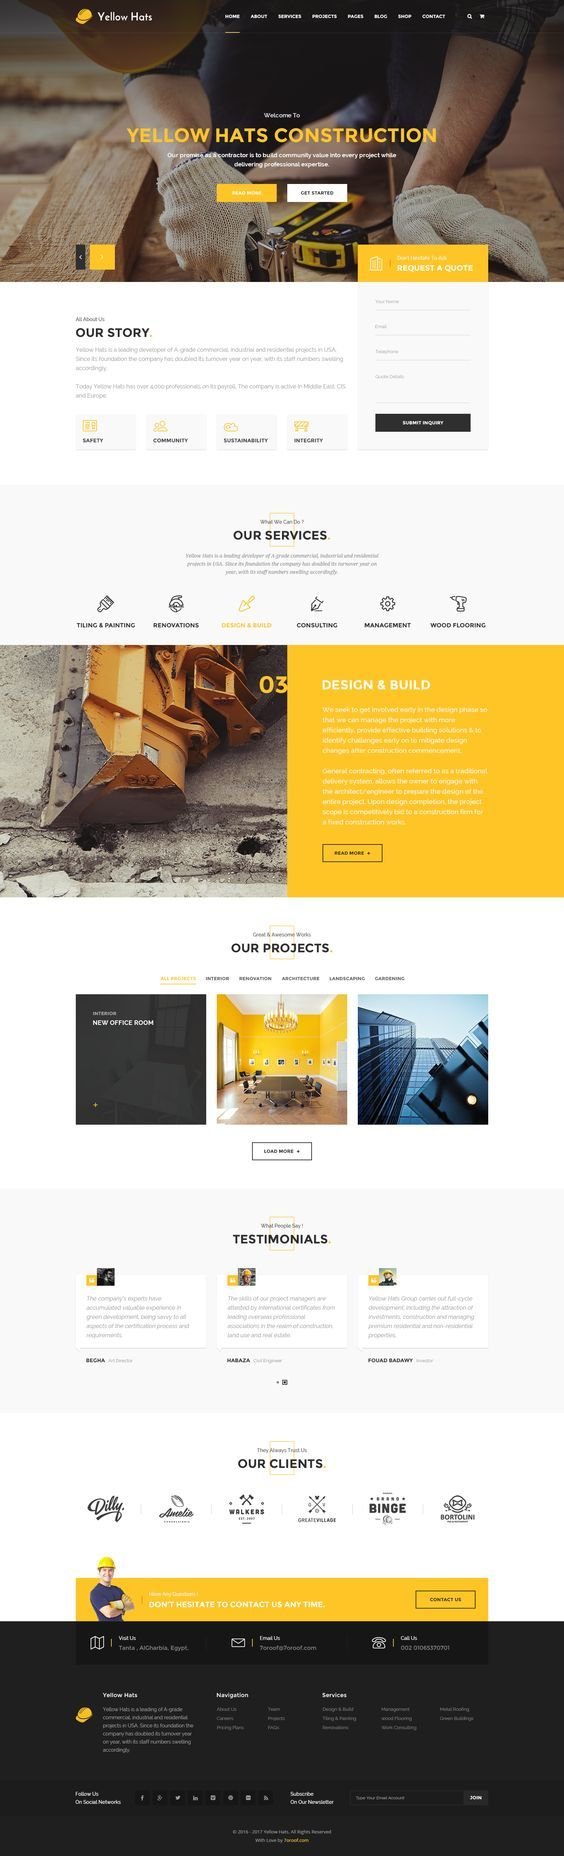 http://themeforest.net/item/yellow-hats-construction-business-psd-template/14367828?s_phrase=: